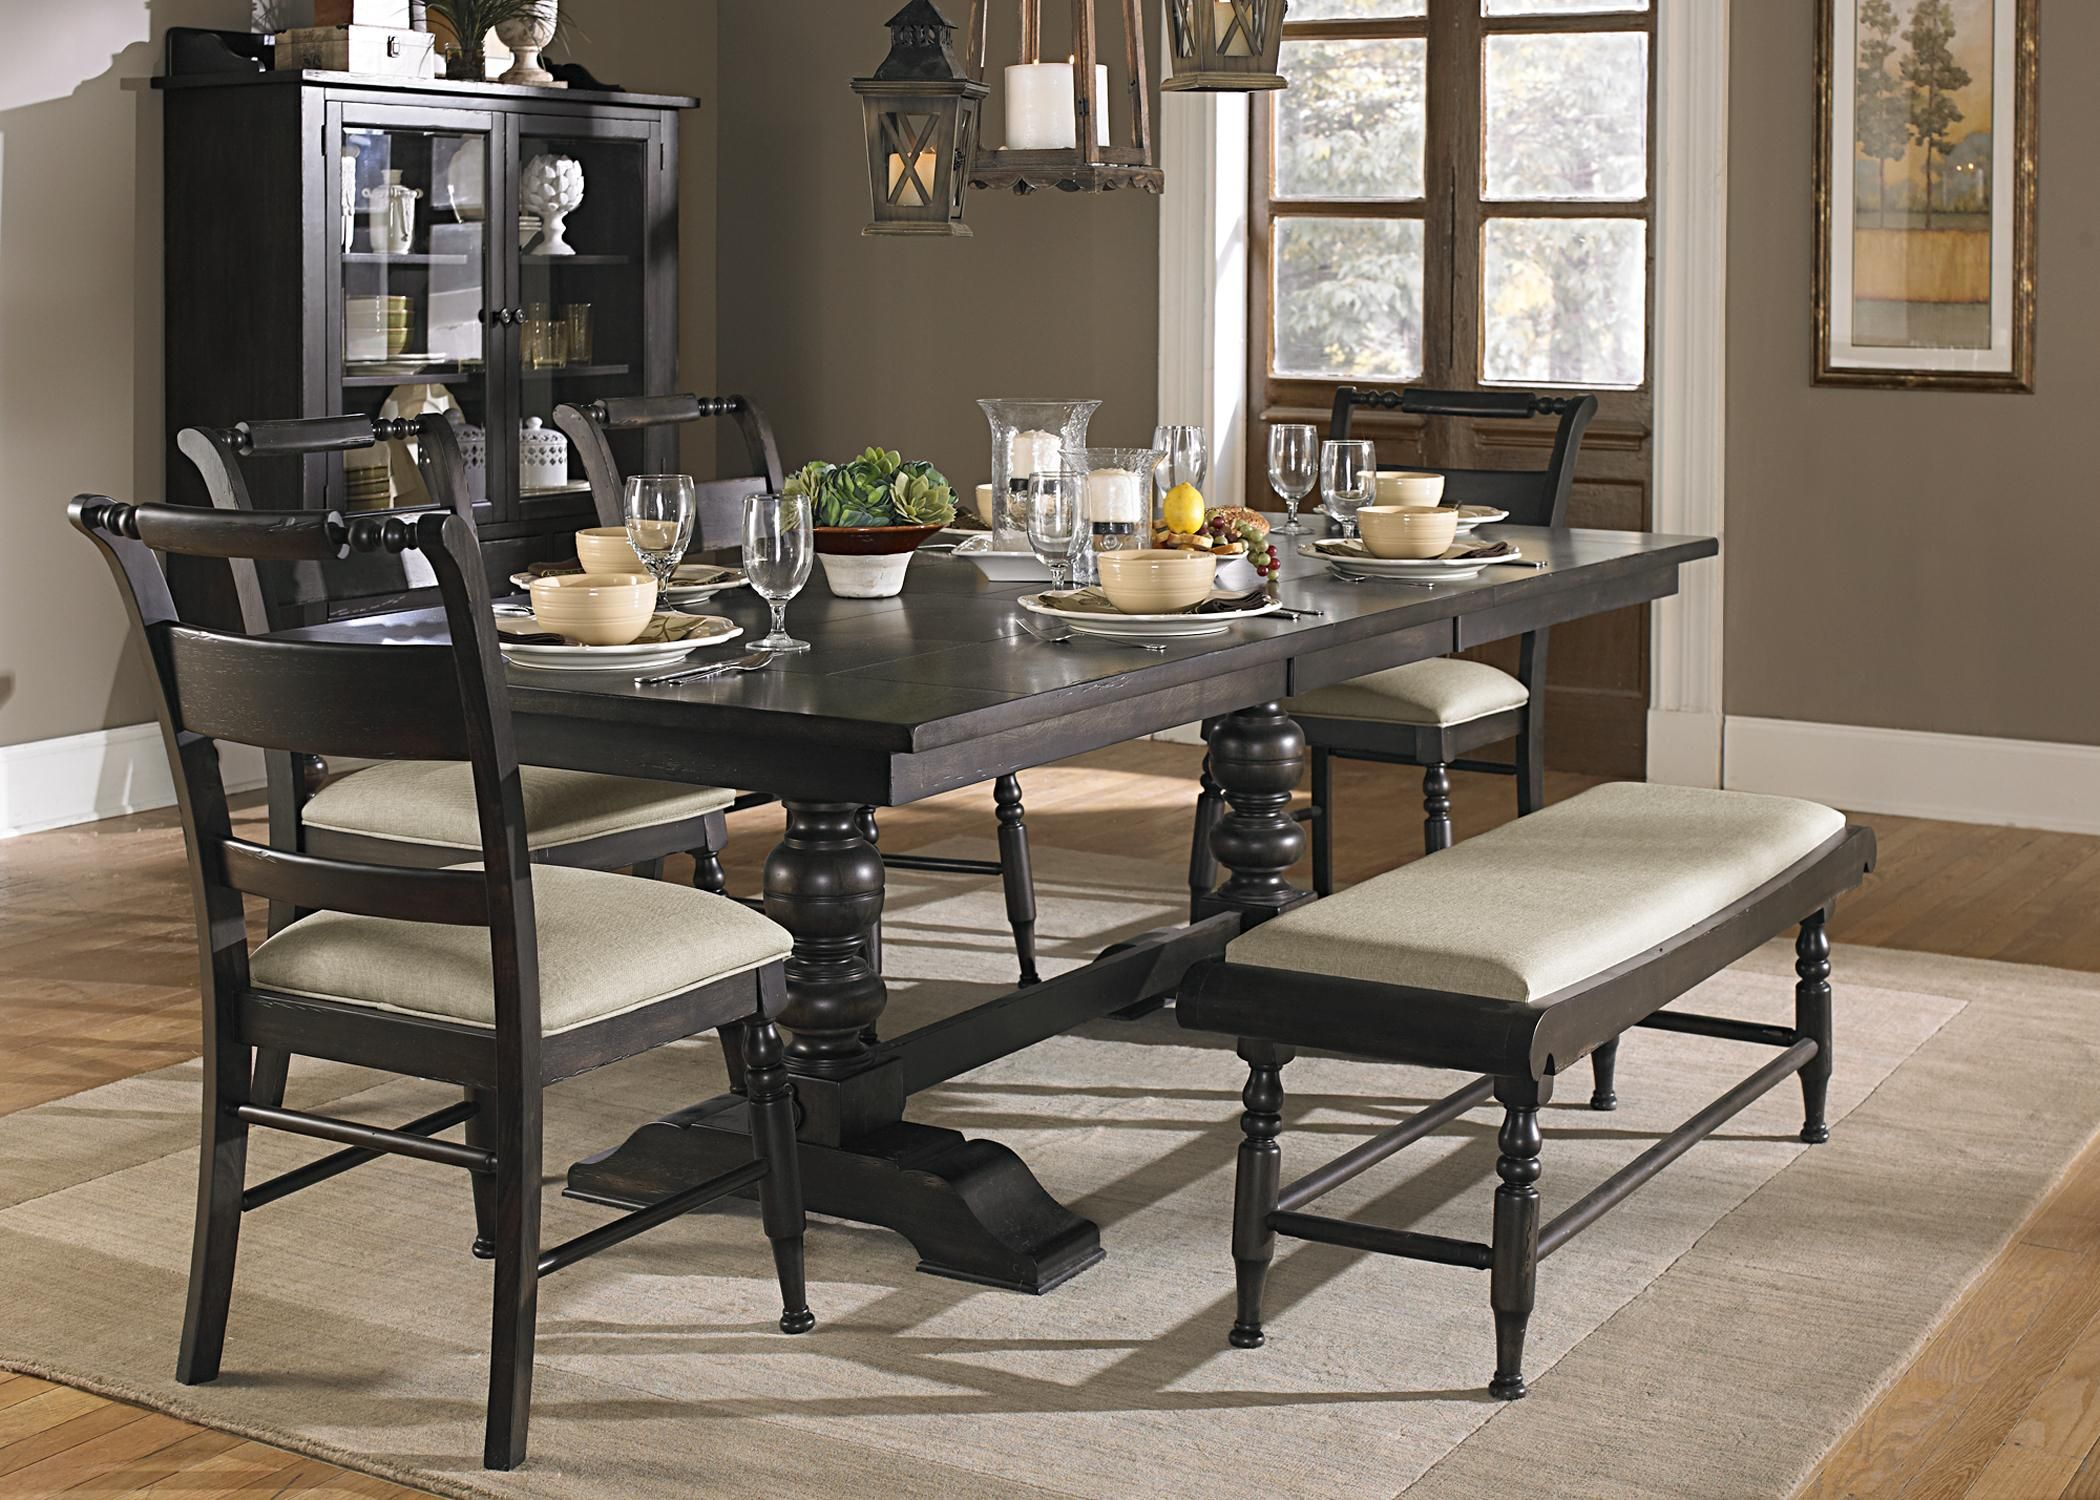 Wondrous Whitney 6 Piece Trestle Table Set With Bench By Liberty Caraccident5 Cool Chair Designs And Ideas Caraccident5Info